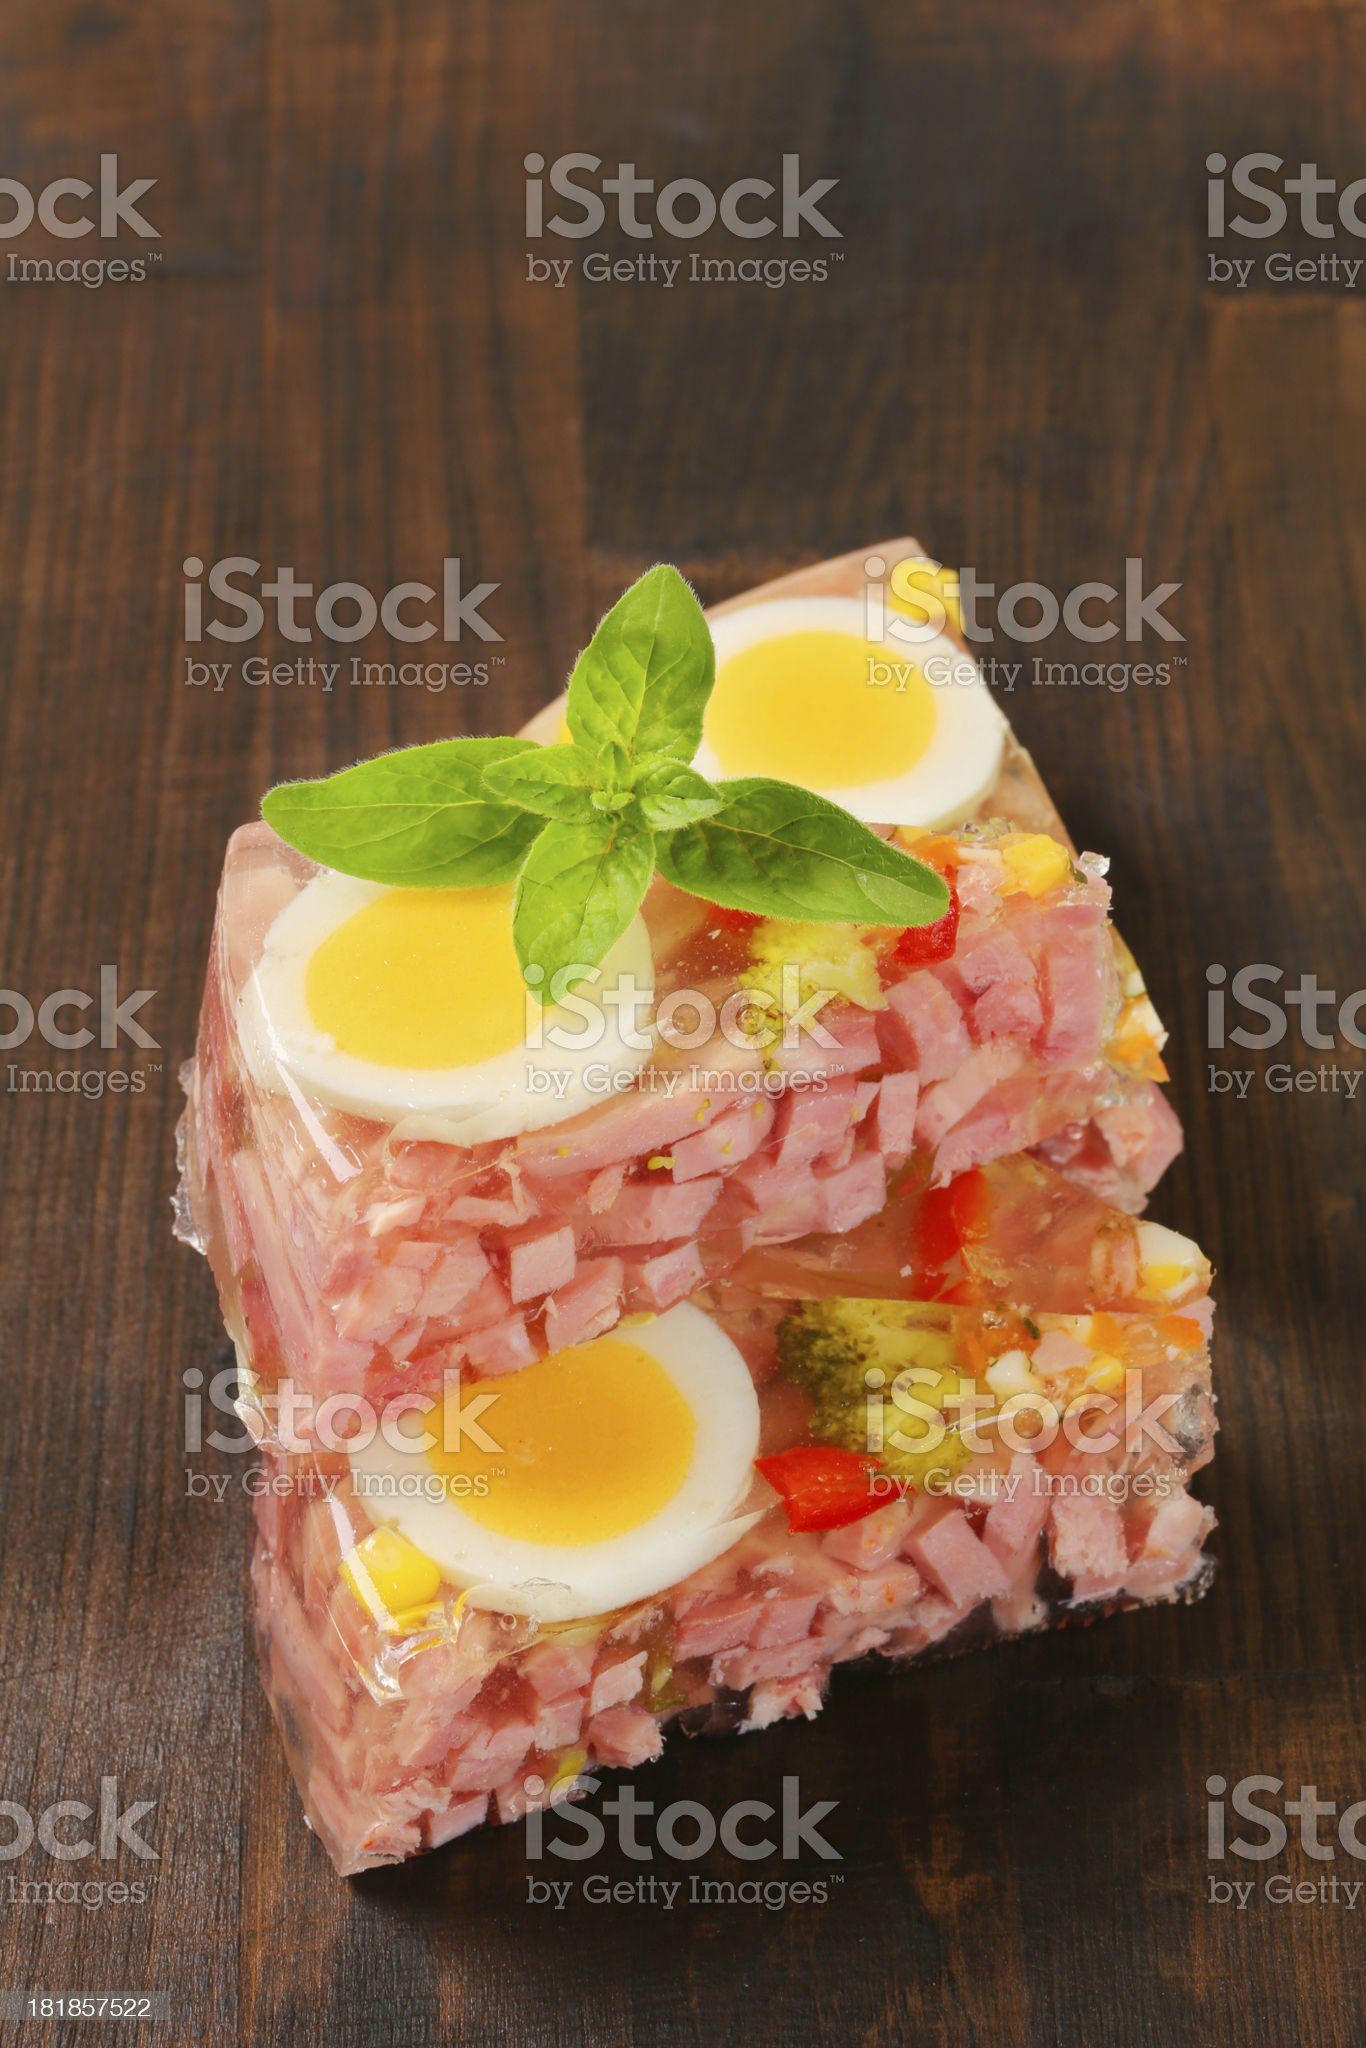 Slices of ham and egg aspic pie royalty-free stock photo